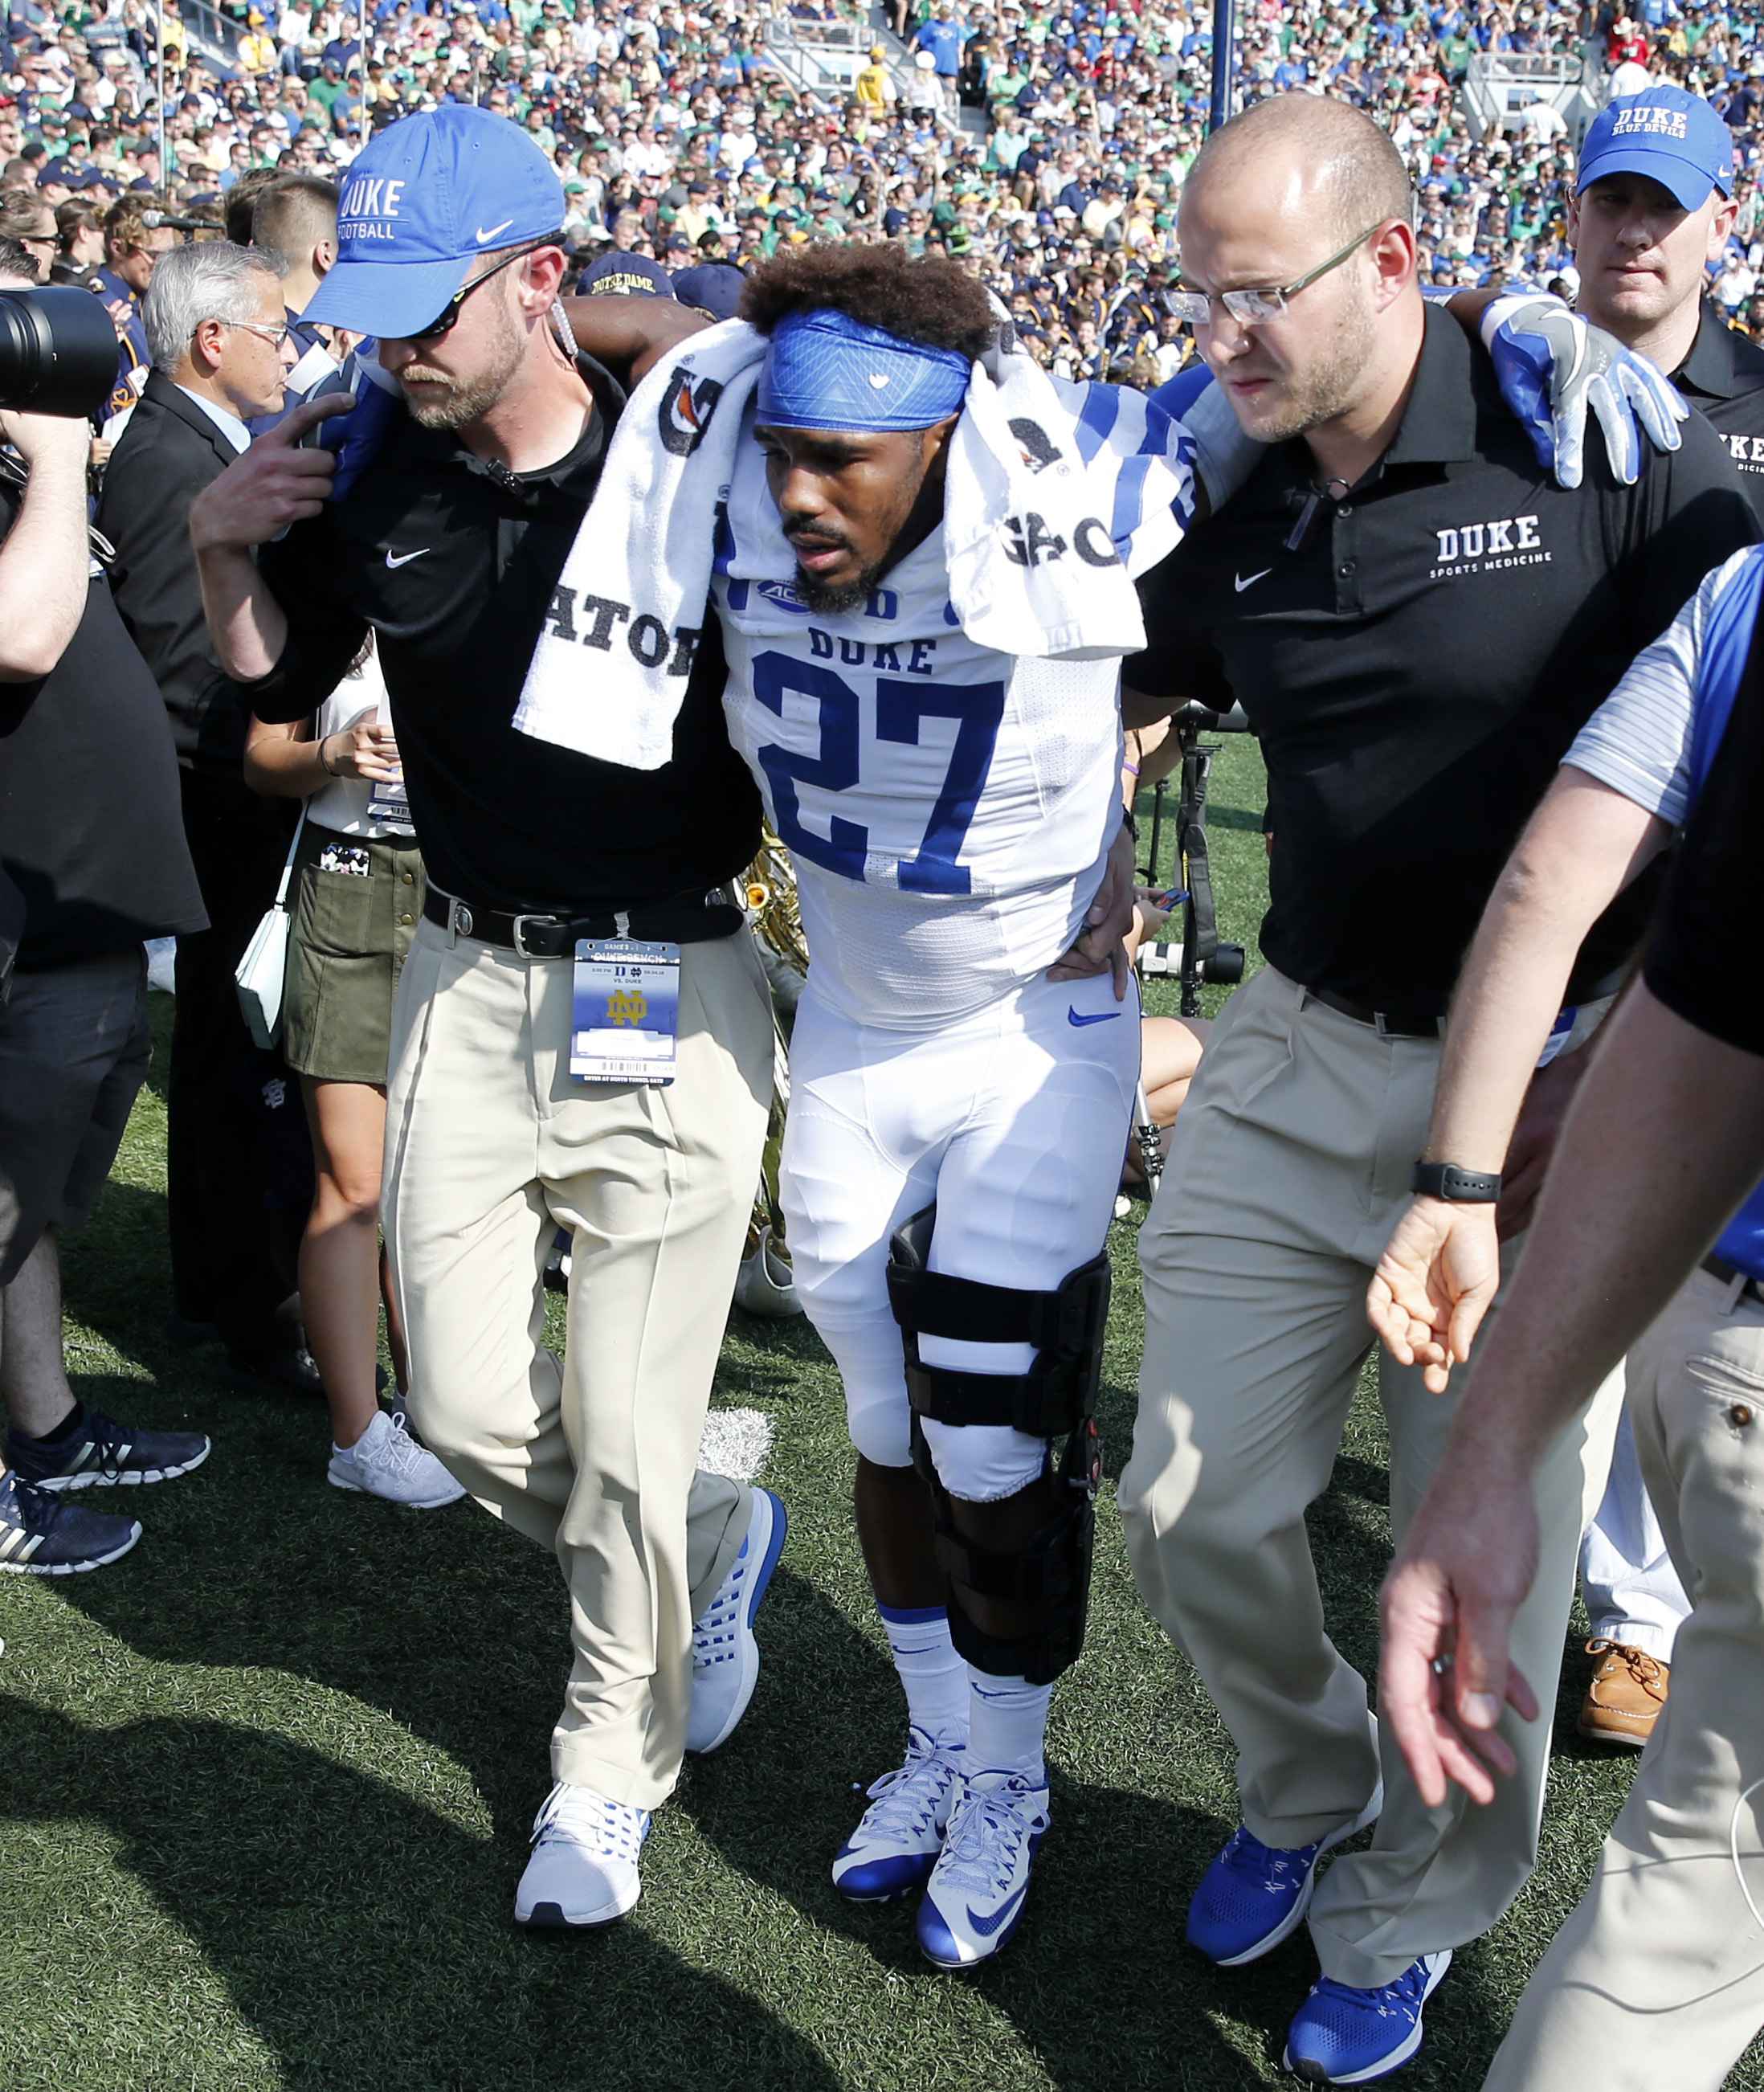 Duke safety DeVon Edwards, center, is taken to the locker room after a left leg injury during the first half of an NCAA college football game against Notre Dame, Saturday, Sept. 24, 2016, in South Bend, Ind. (AP Photo/Charles Rex Arbogast)